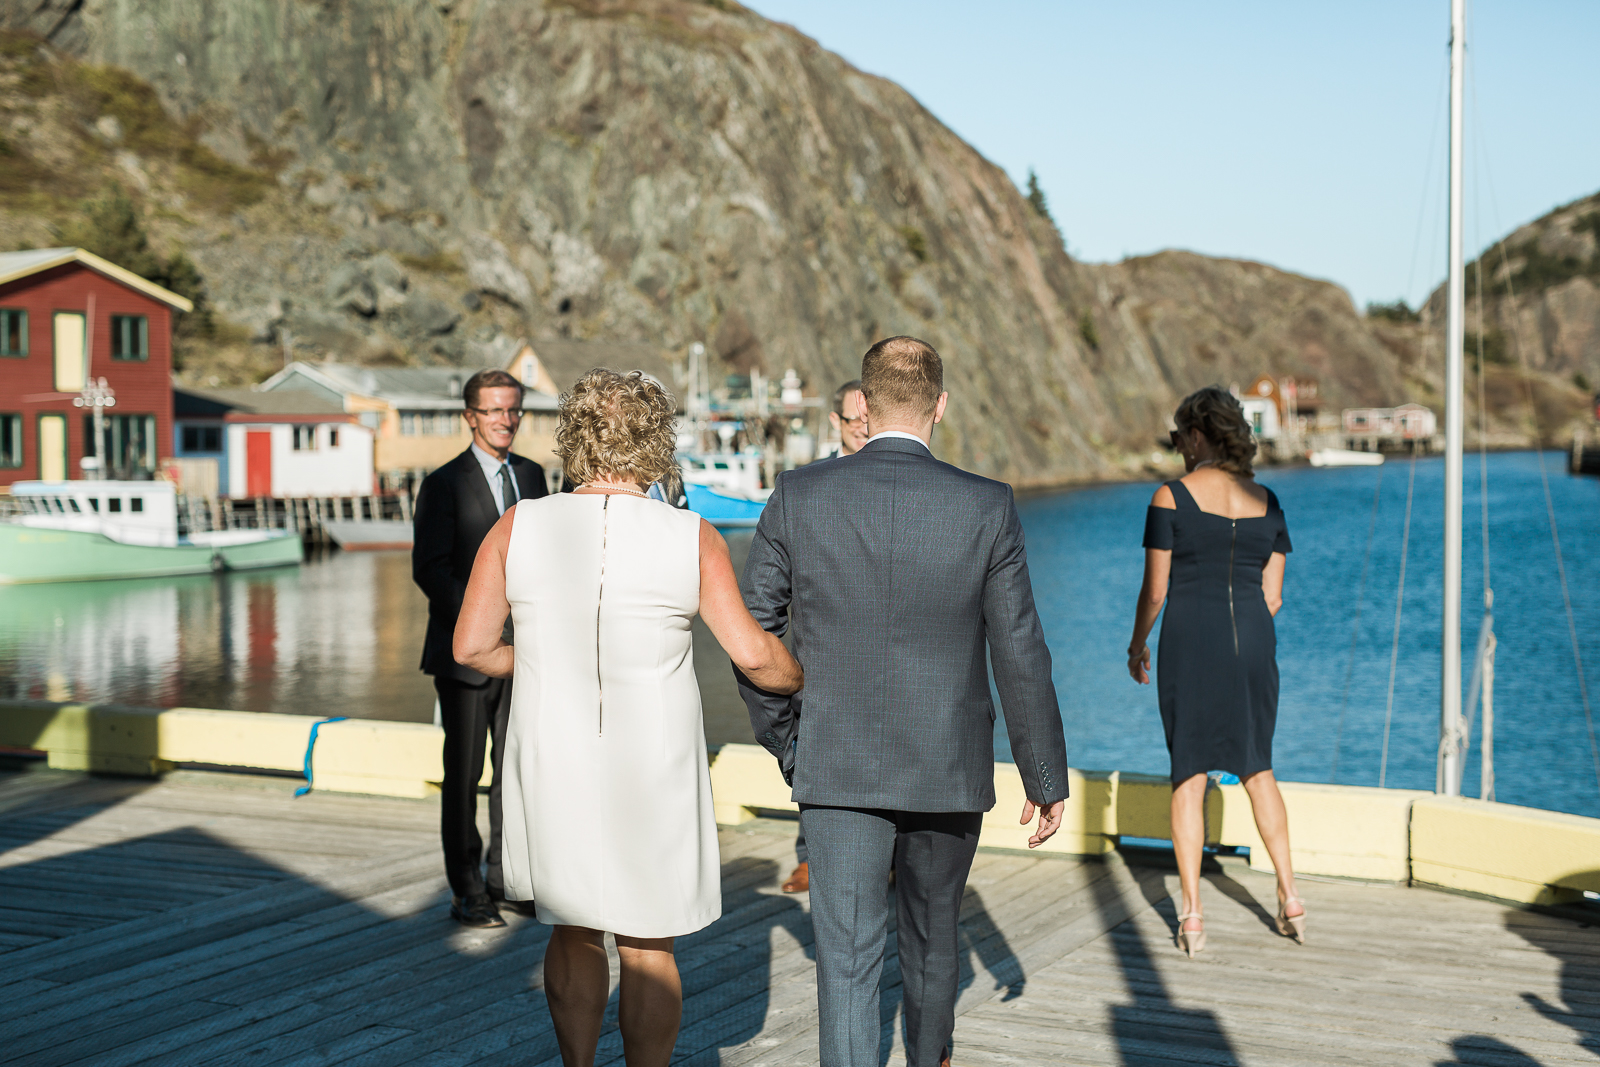 quidi-vidi-wedding-photographer-michelle-don-7.jpg